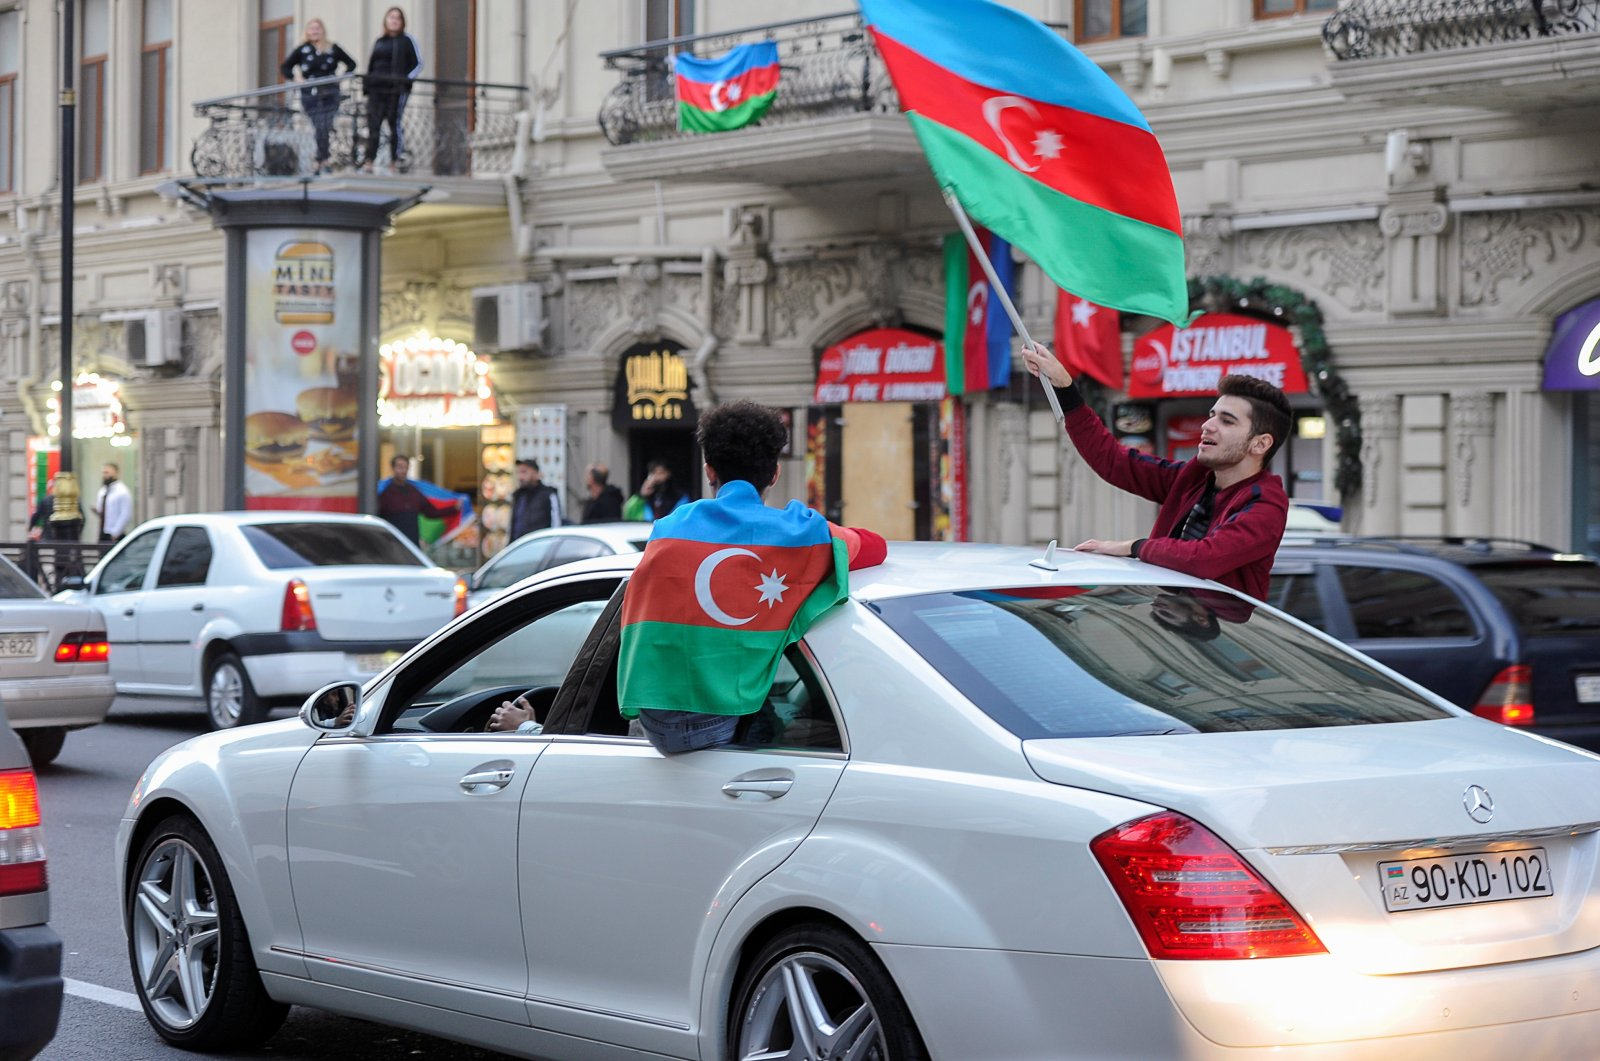 People with Azerbaijani flags ride in a car as they take part in celebrations in a street following the signing of a deal to end the military conflict over the Nagorno-Karabakh region, in Baku, Azerbaijan, Nov. 10, 2020. (Reuters Photo)